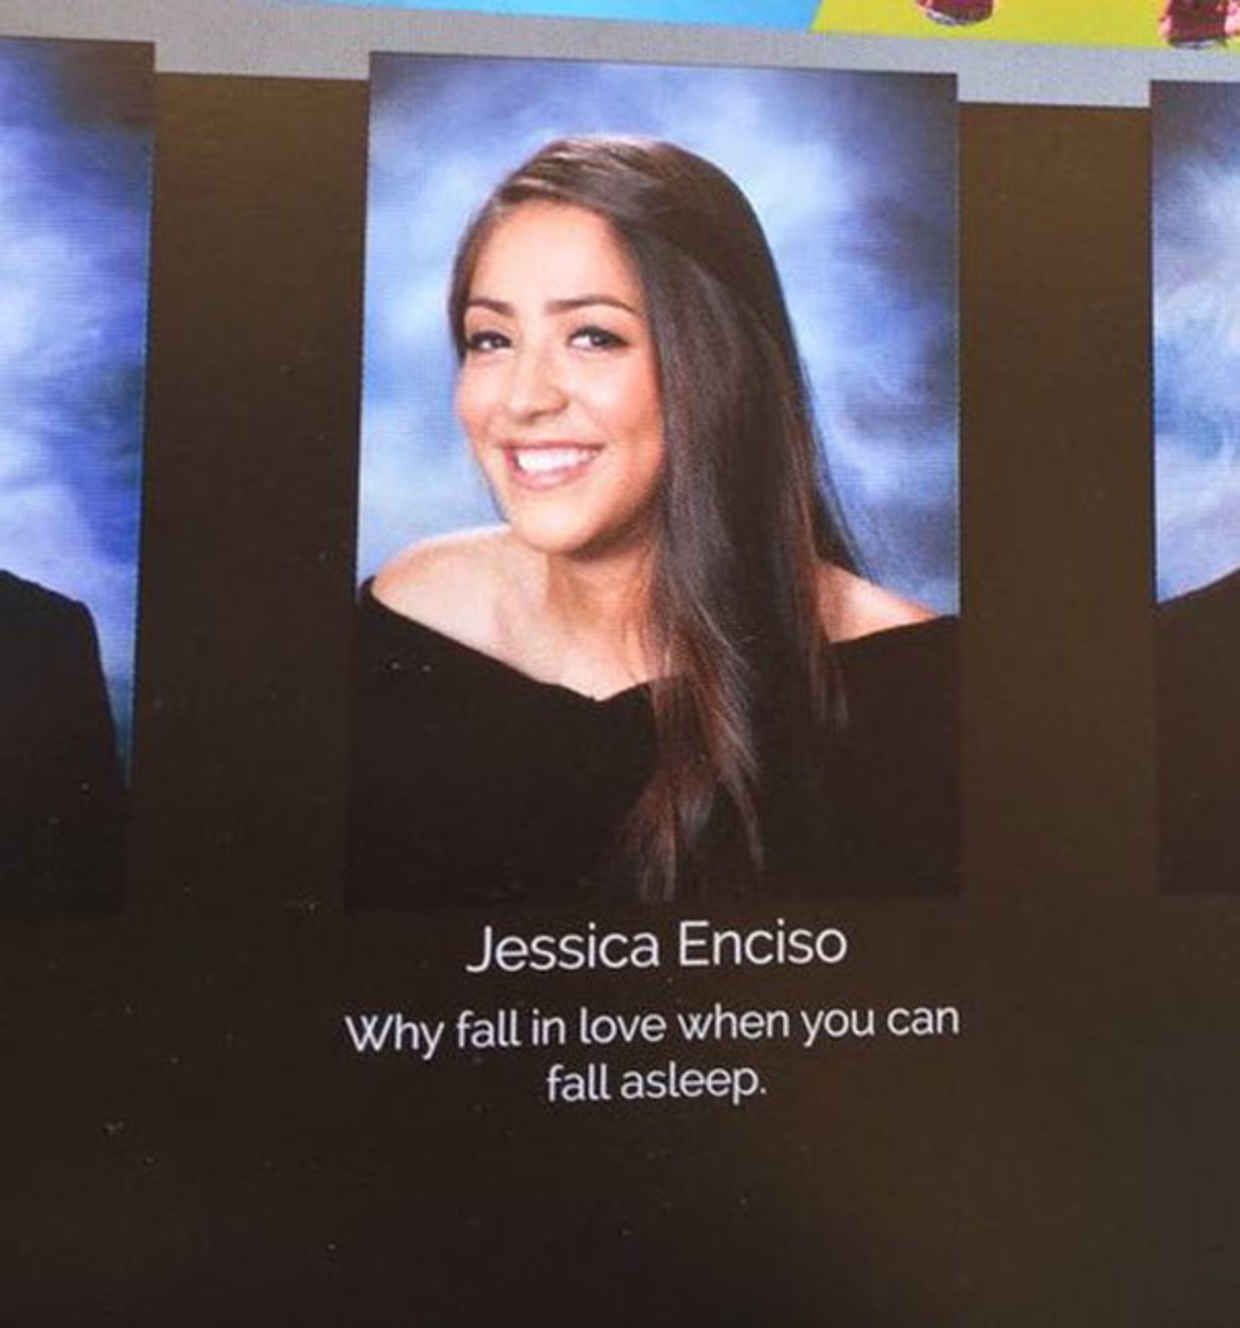 The Funniest Yearbook Quotes Of All Time Funny Yearbook - The 28 funniest yearbook quotes of all time